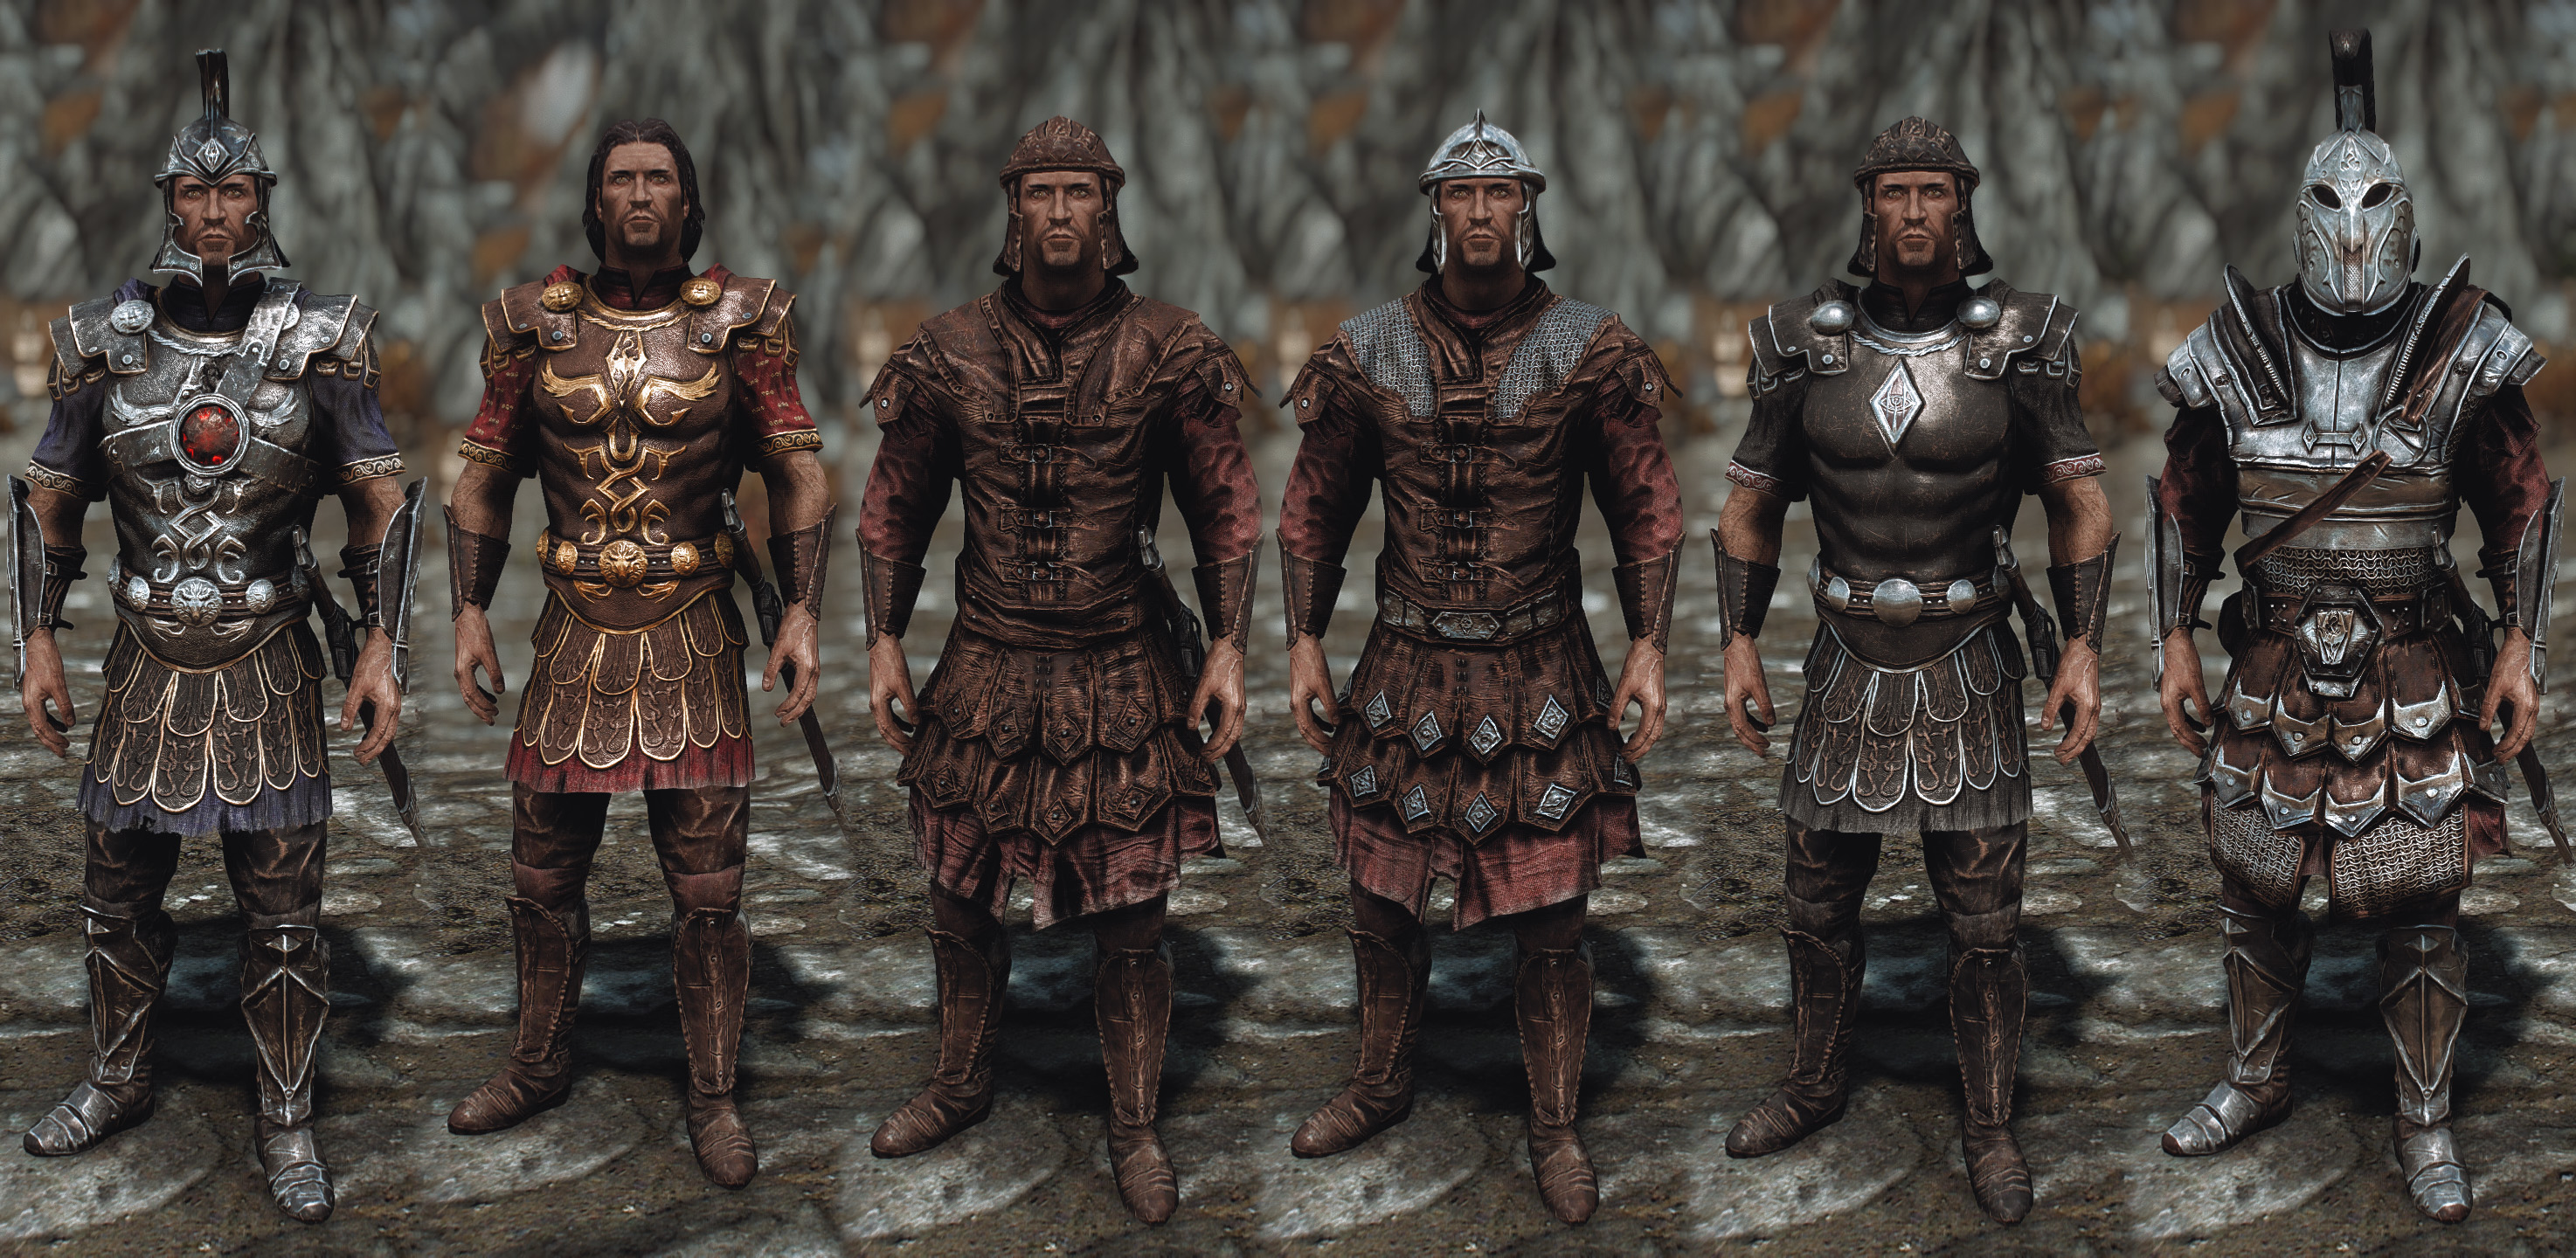 Frankly HD Imperial Armor and Weapons